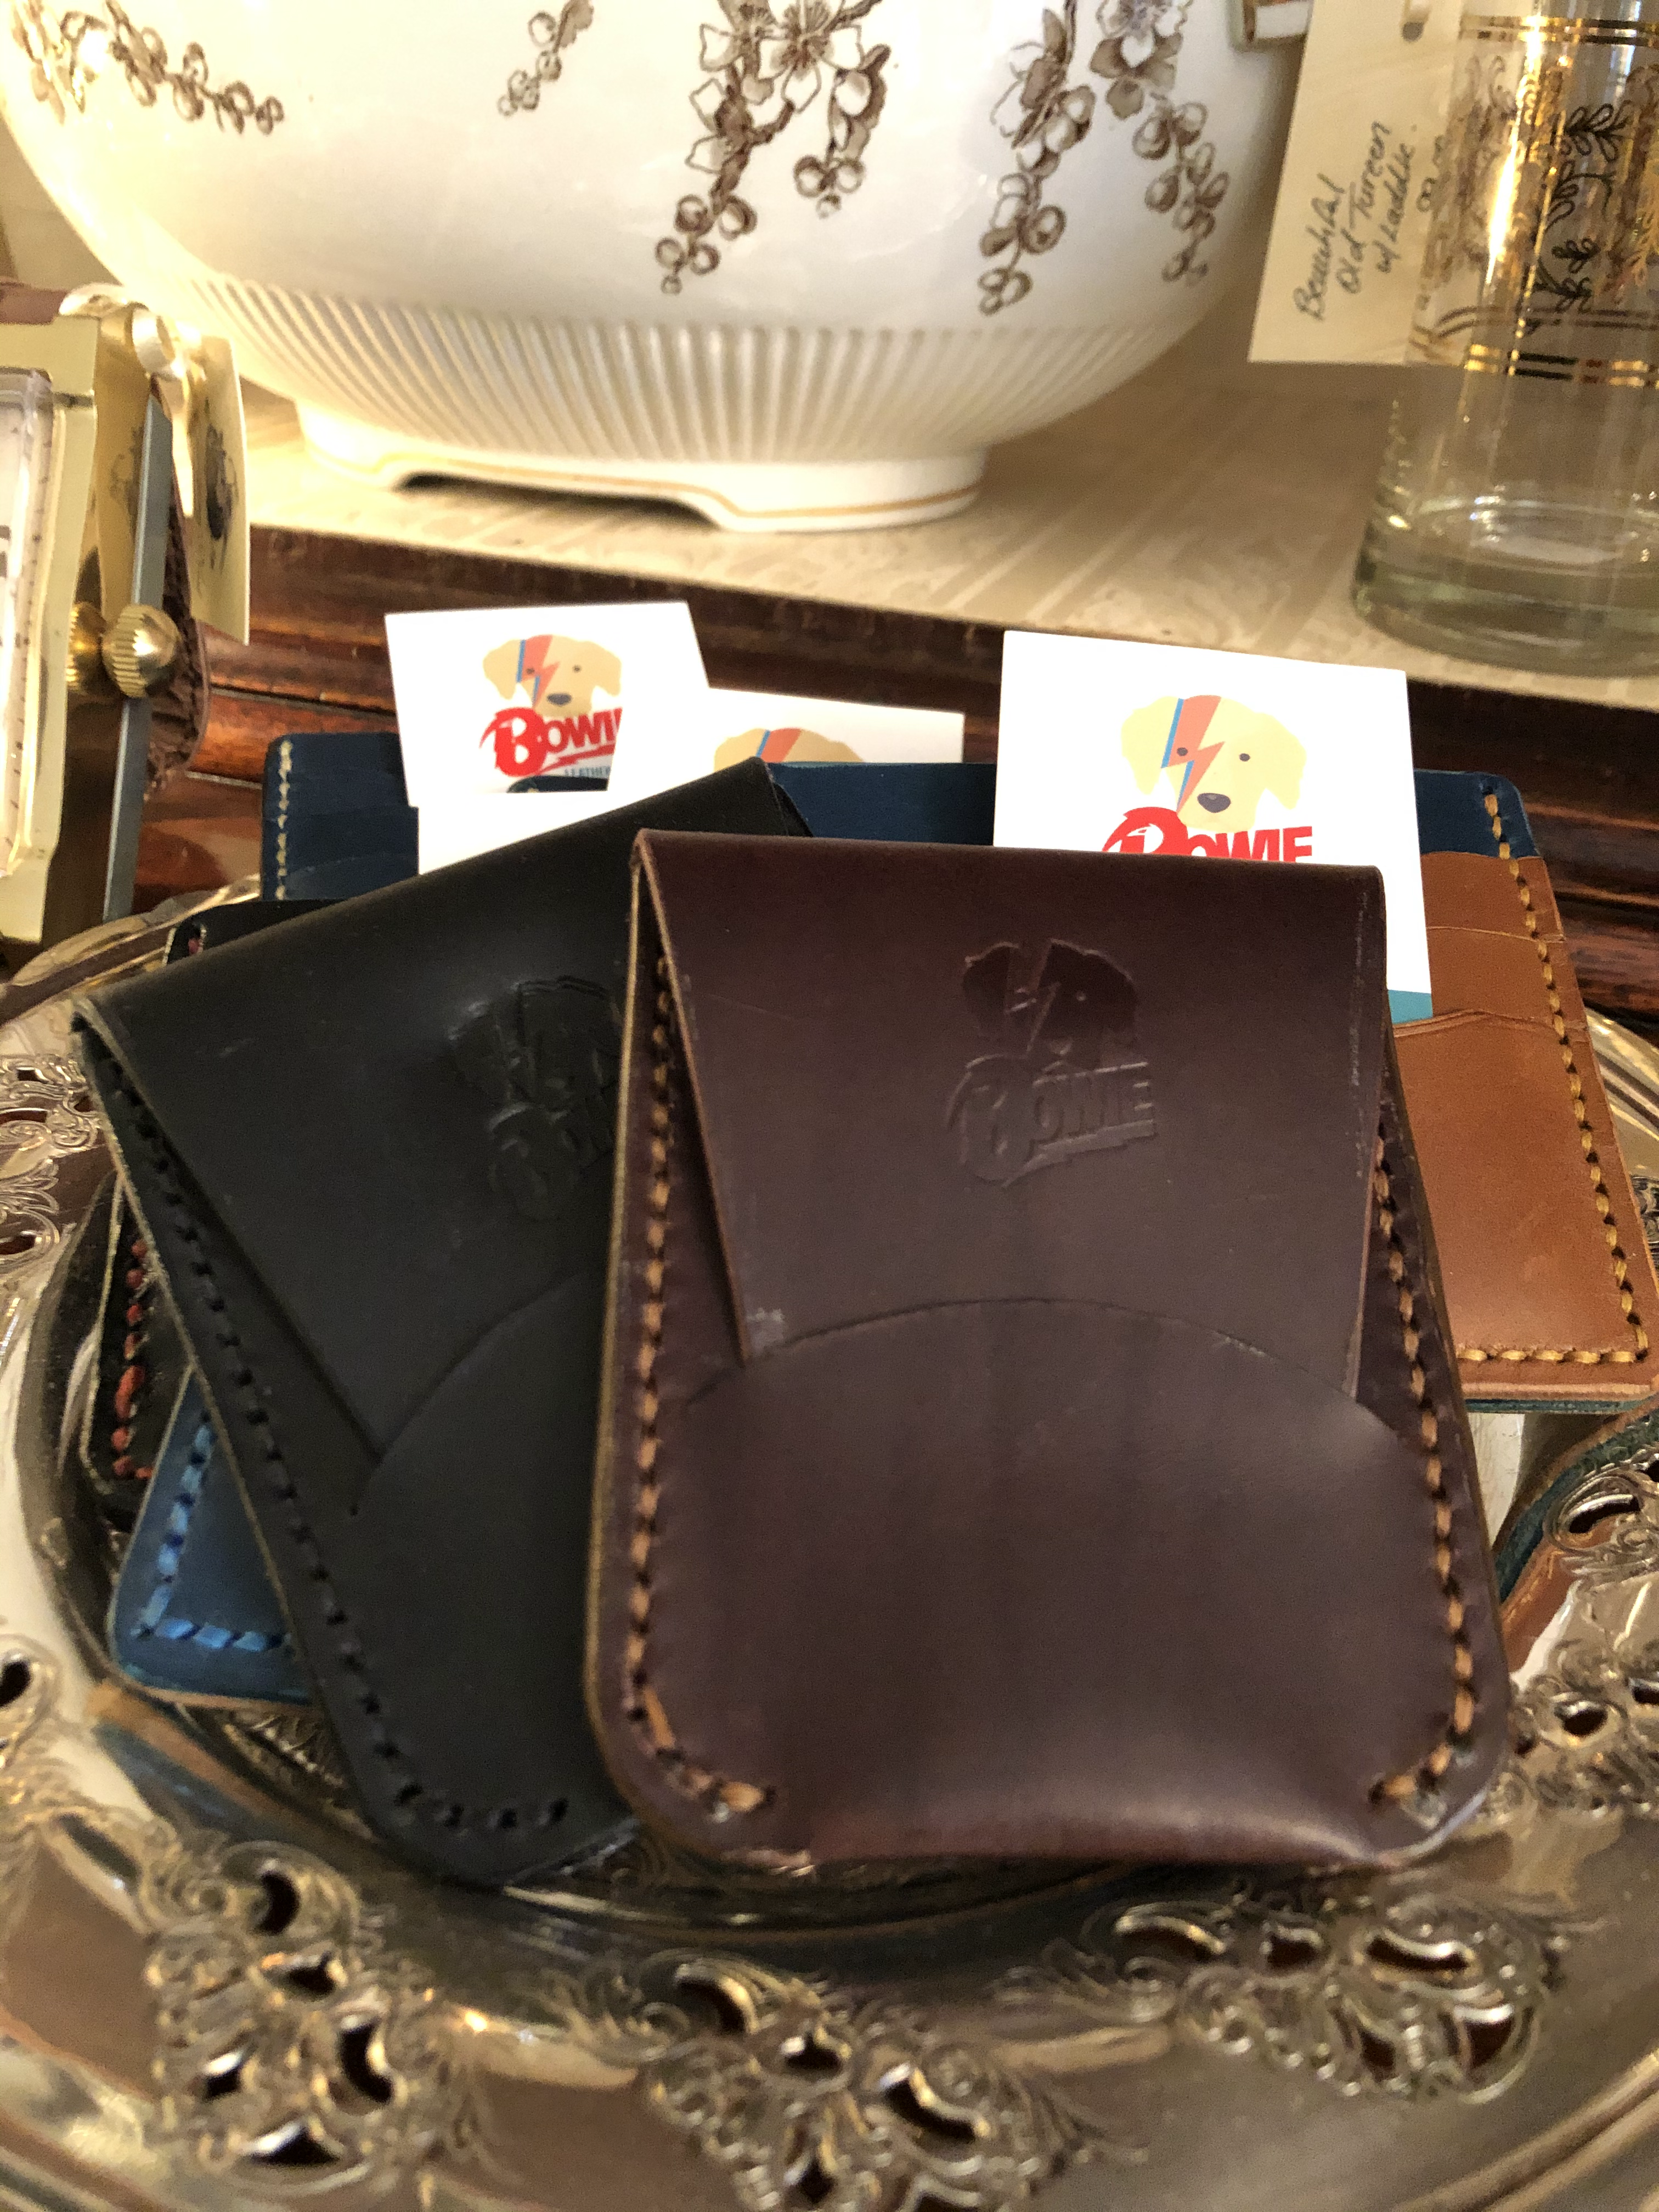 Bowie Leather Goods Small Wallet